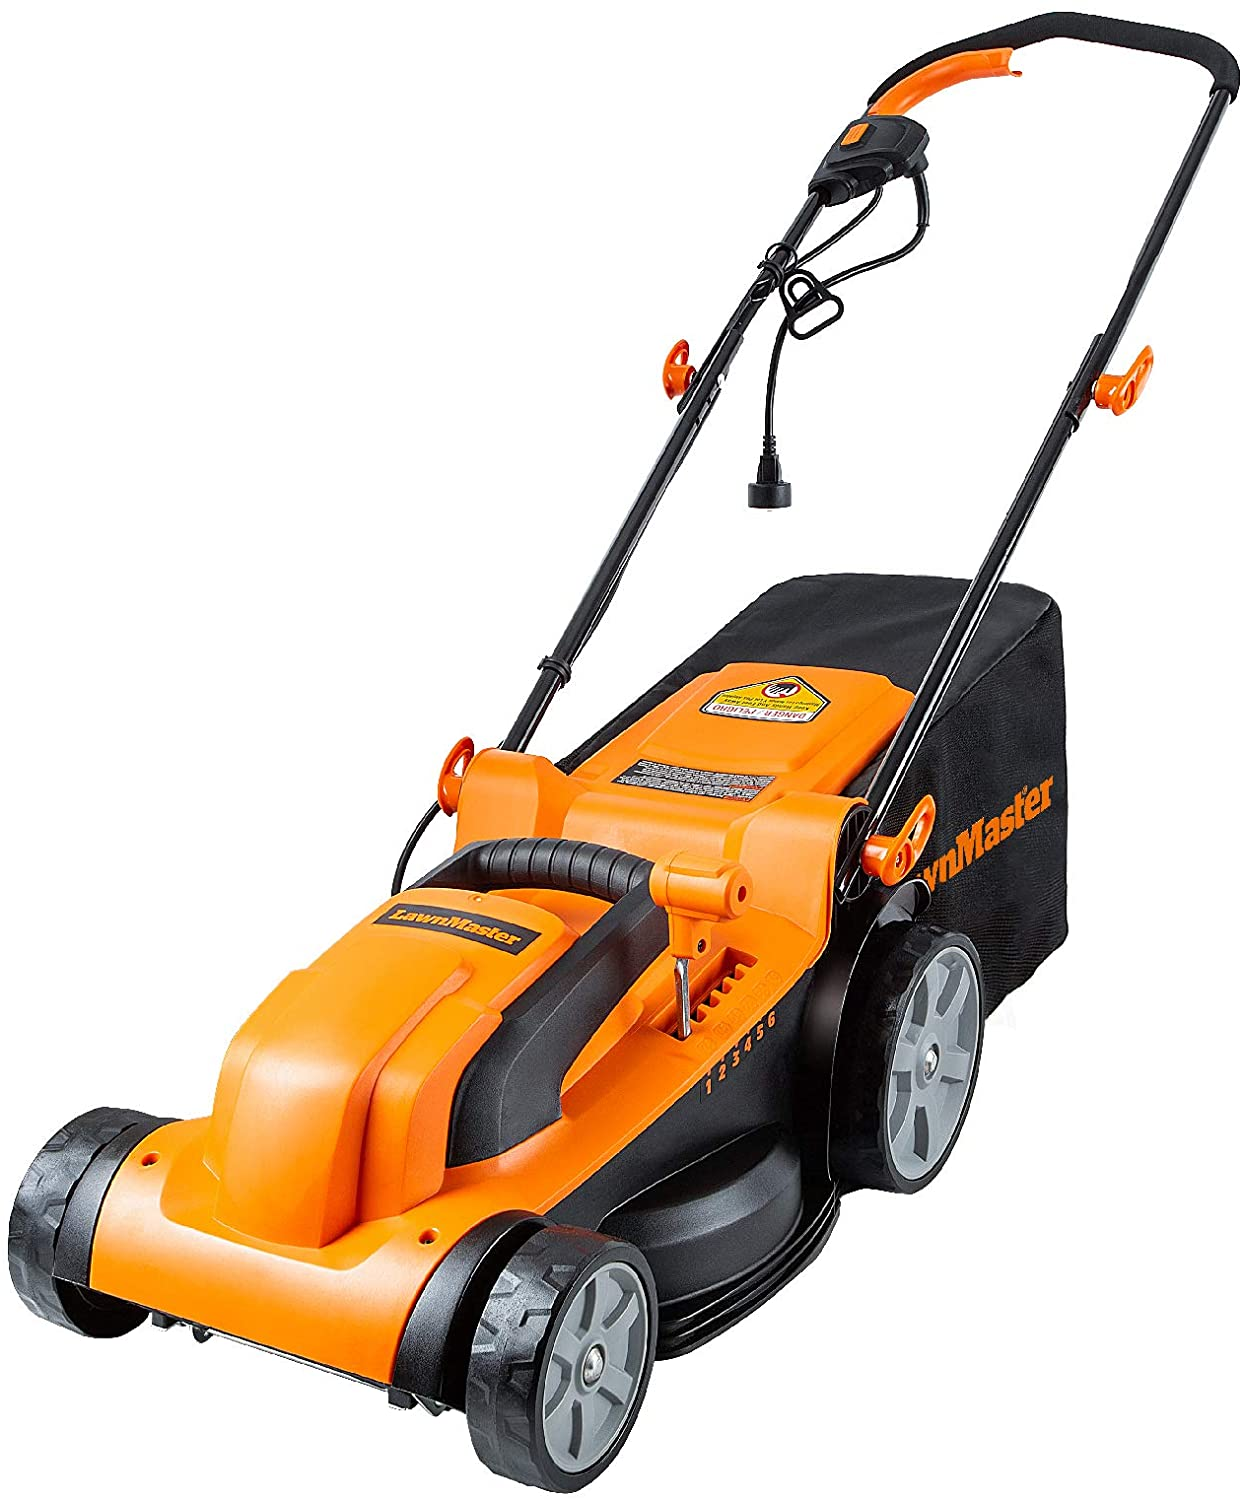 LawnMaster Electric Corded Lawn Mower